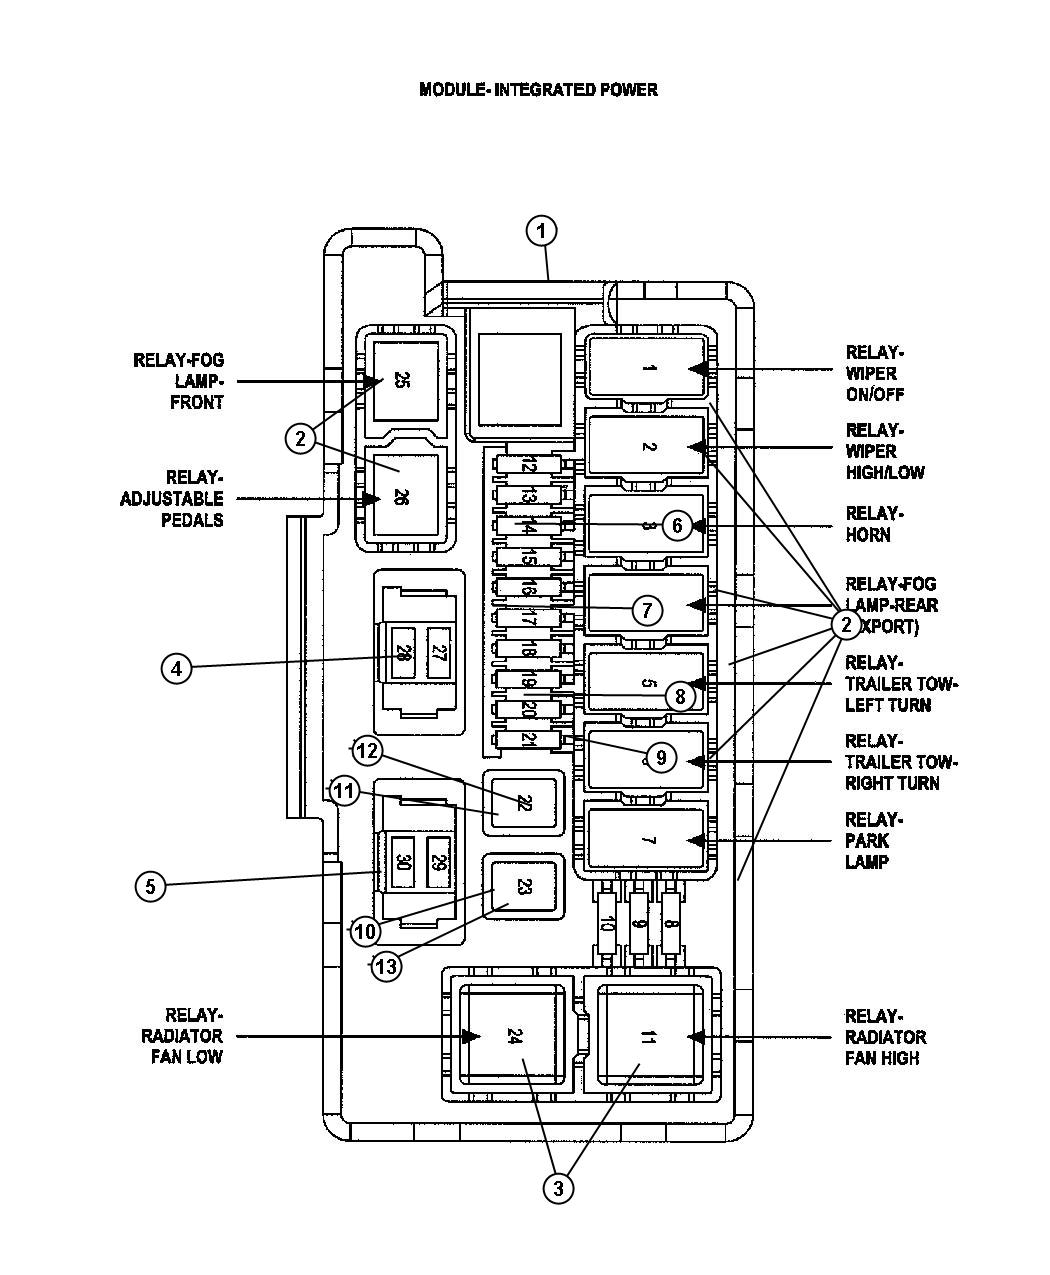 i2163577 jeep stereo wiring diagram jeep free wiring diagrams 2008 jeep wrangler horn wiring diagram at crackthecode.co